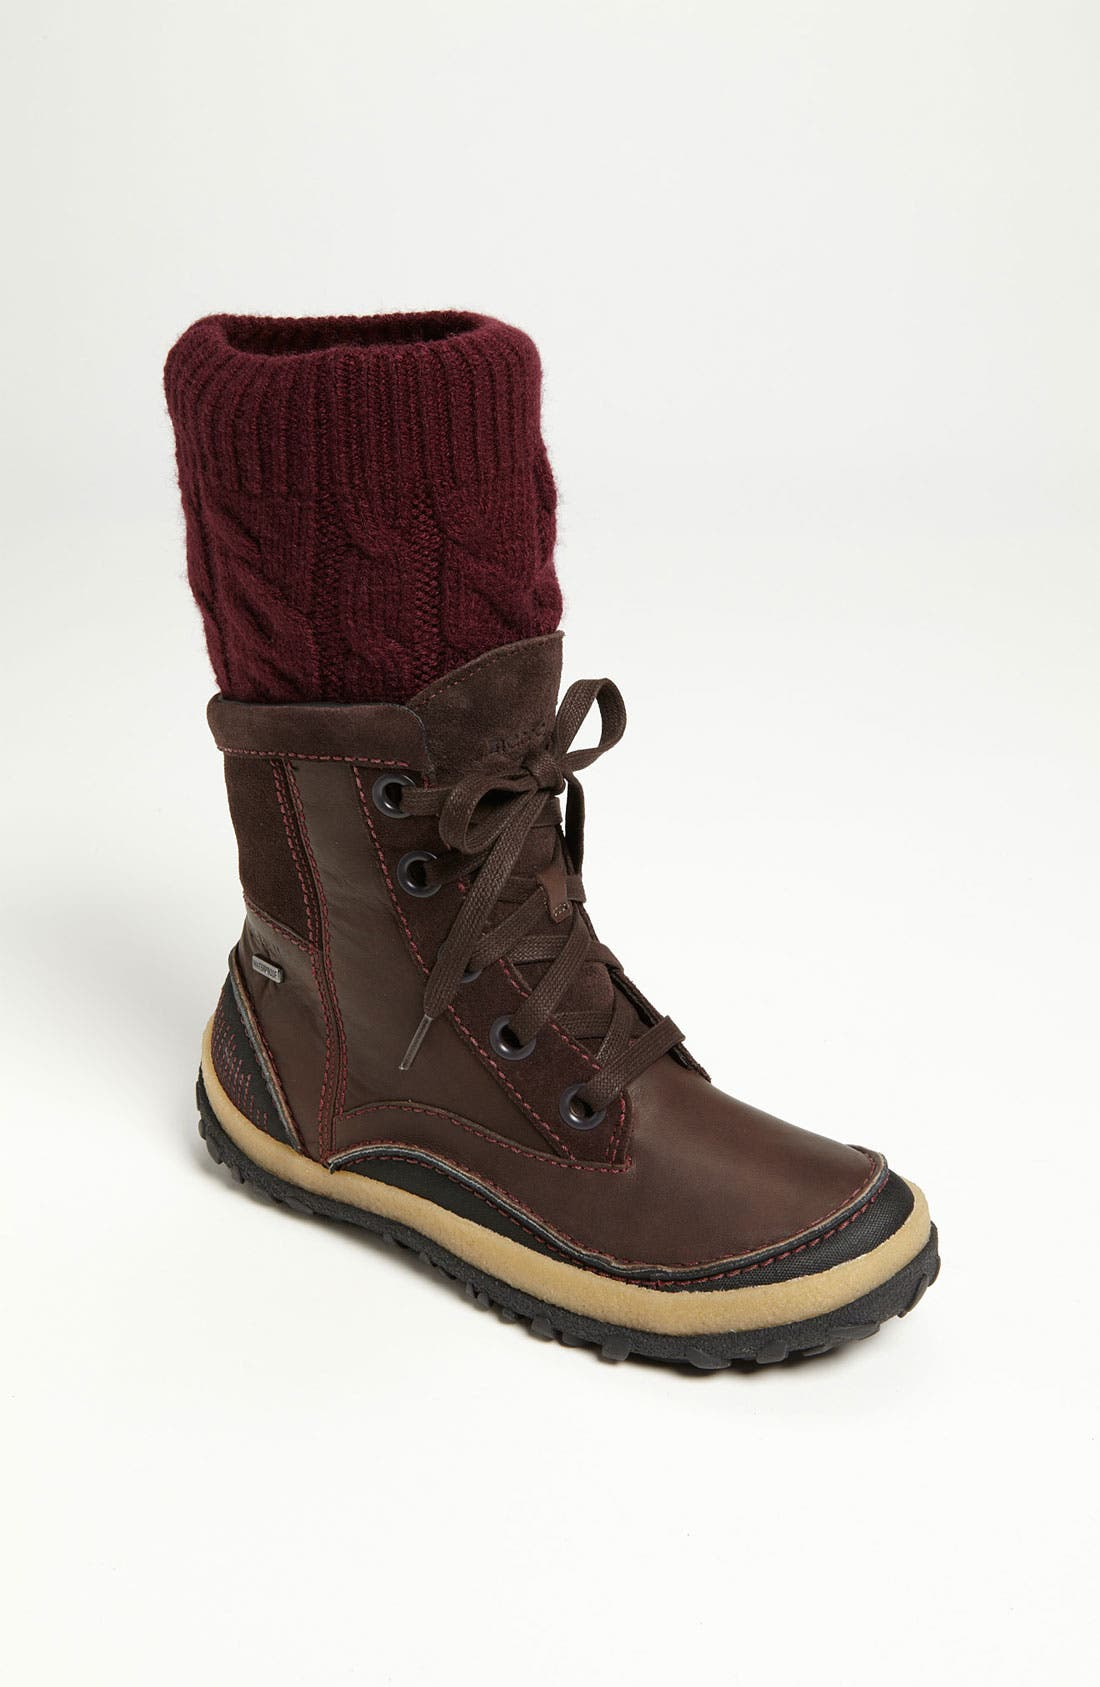 Alternate Image 1 Selected - Merrell 'Dauphine' Waterproof Boot